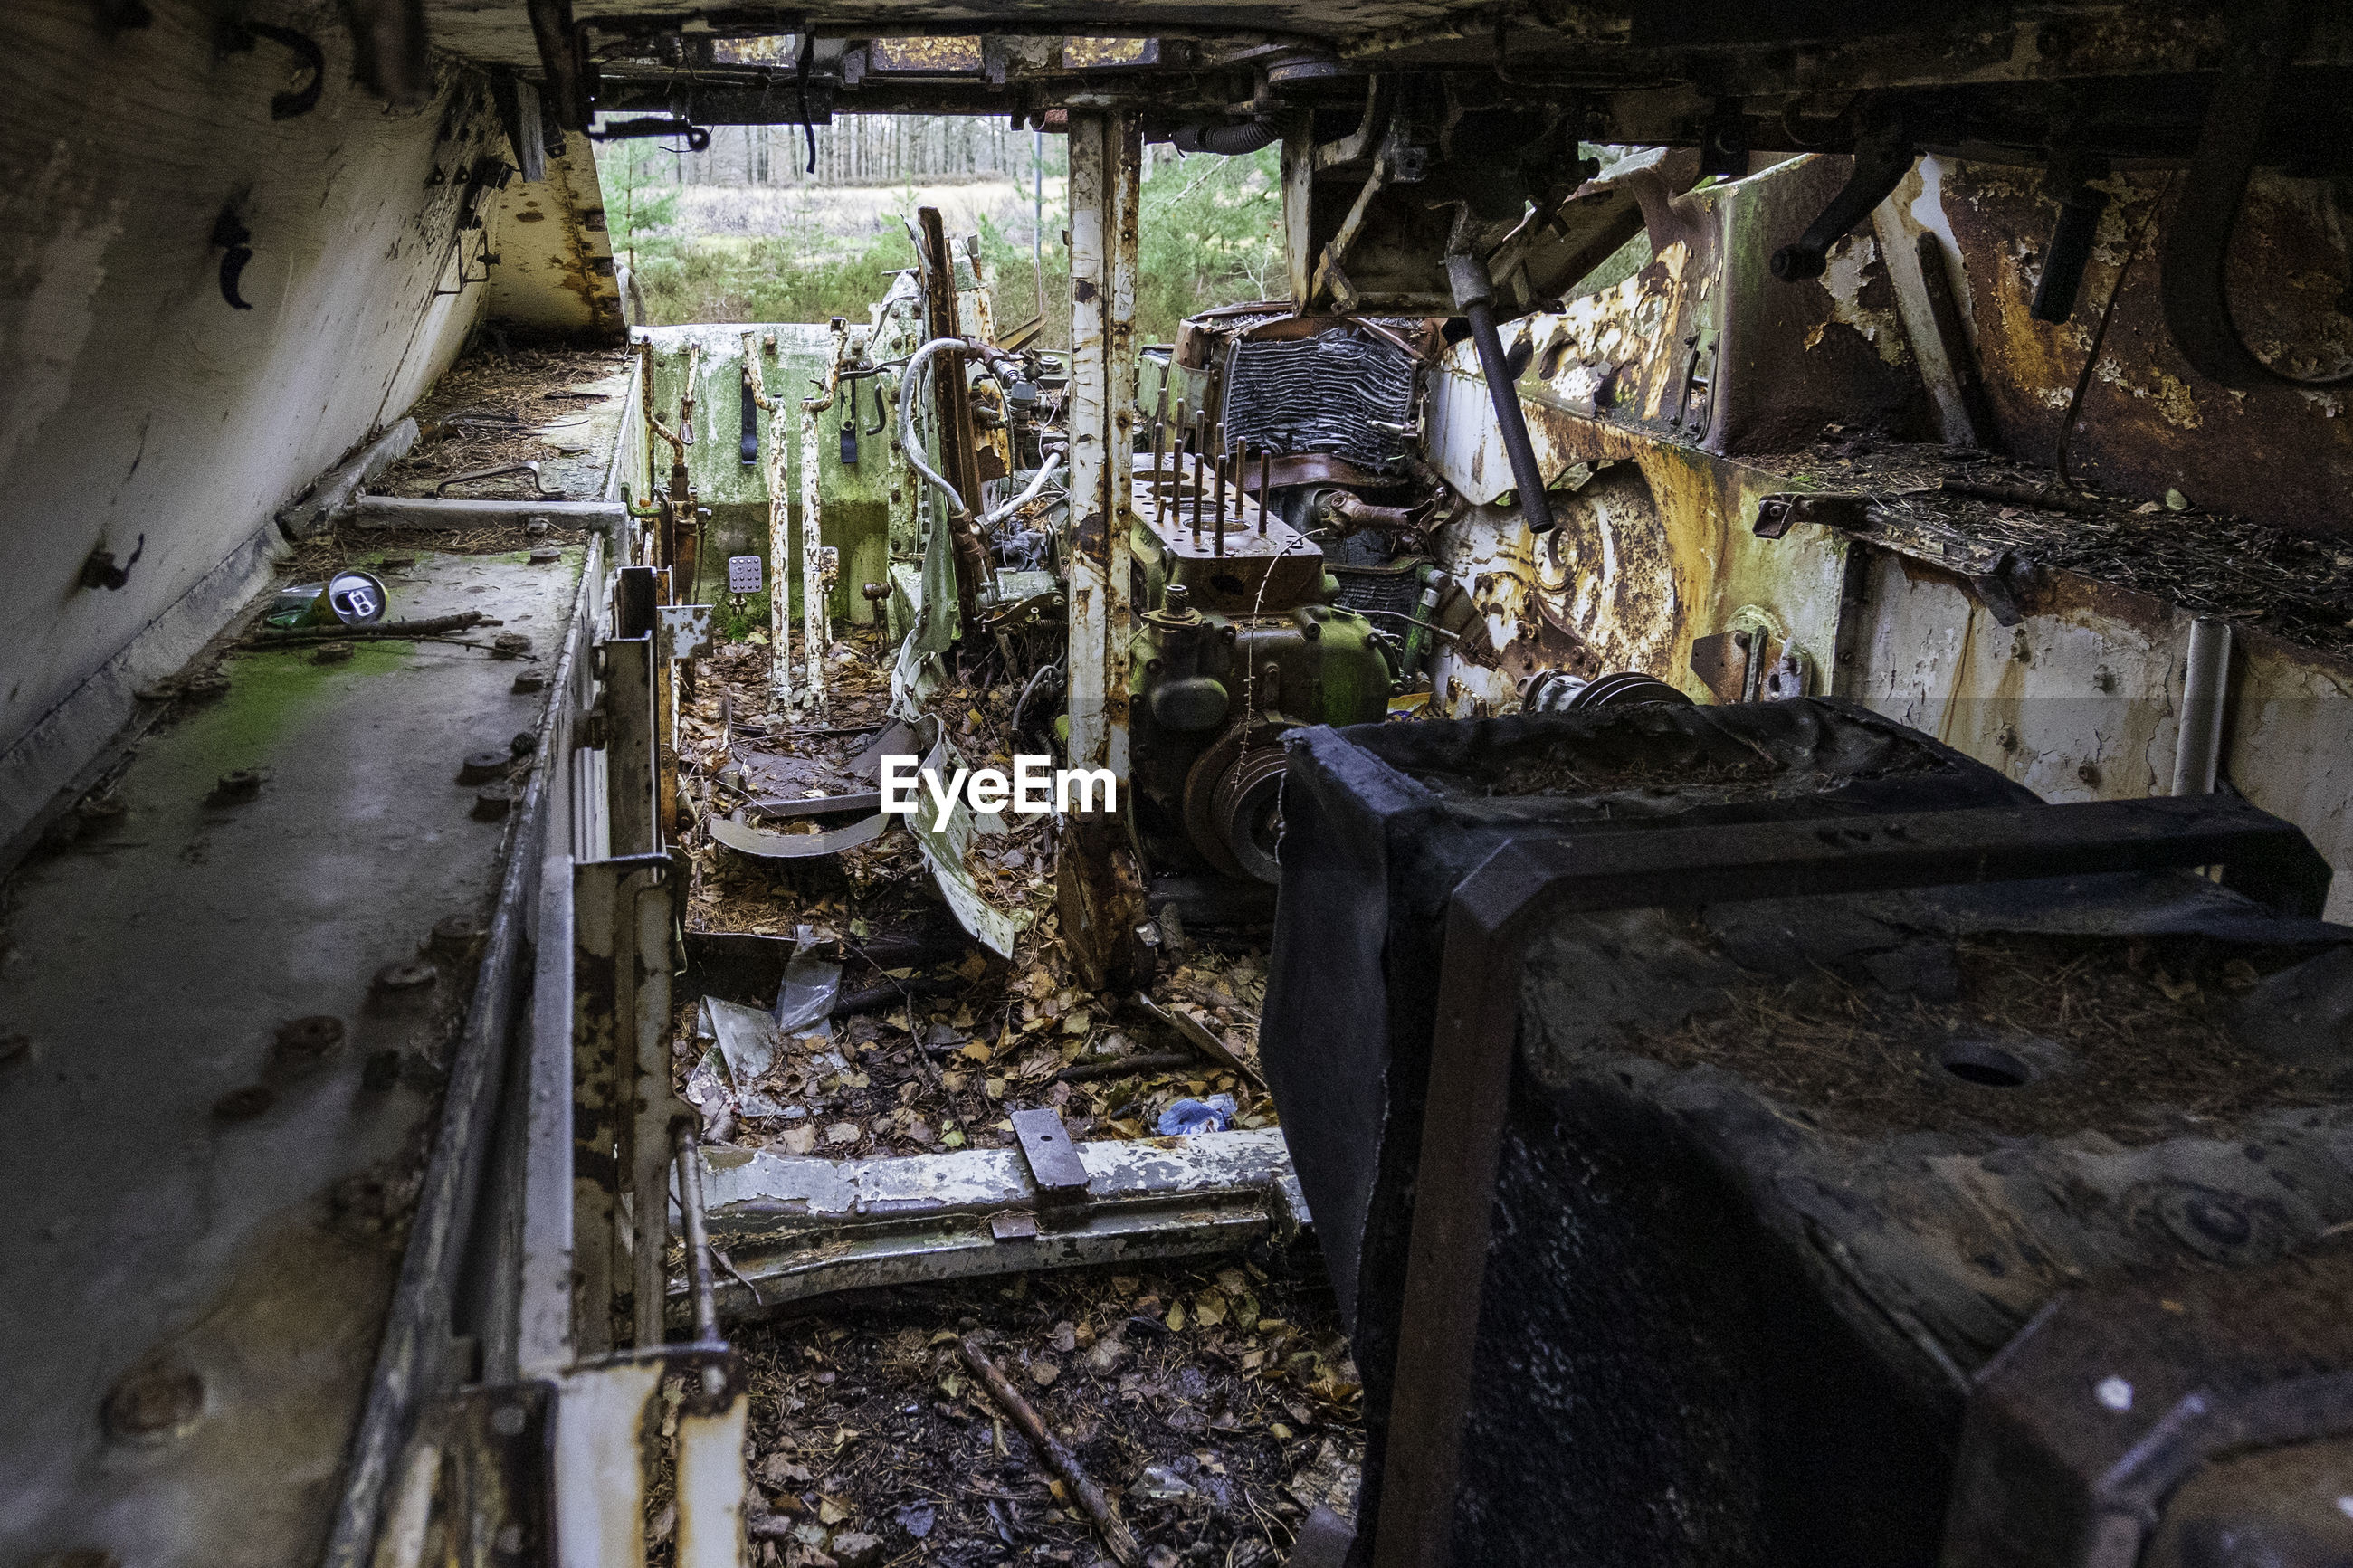 Inside of an abandoned tank